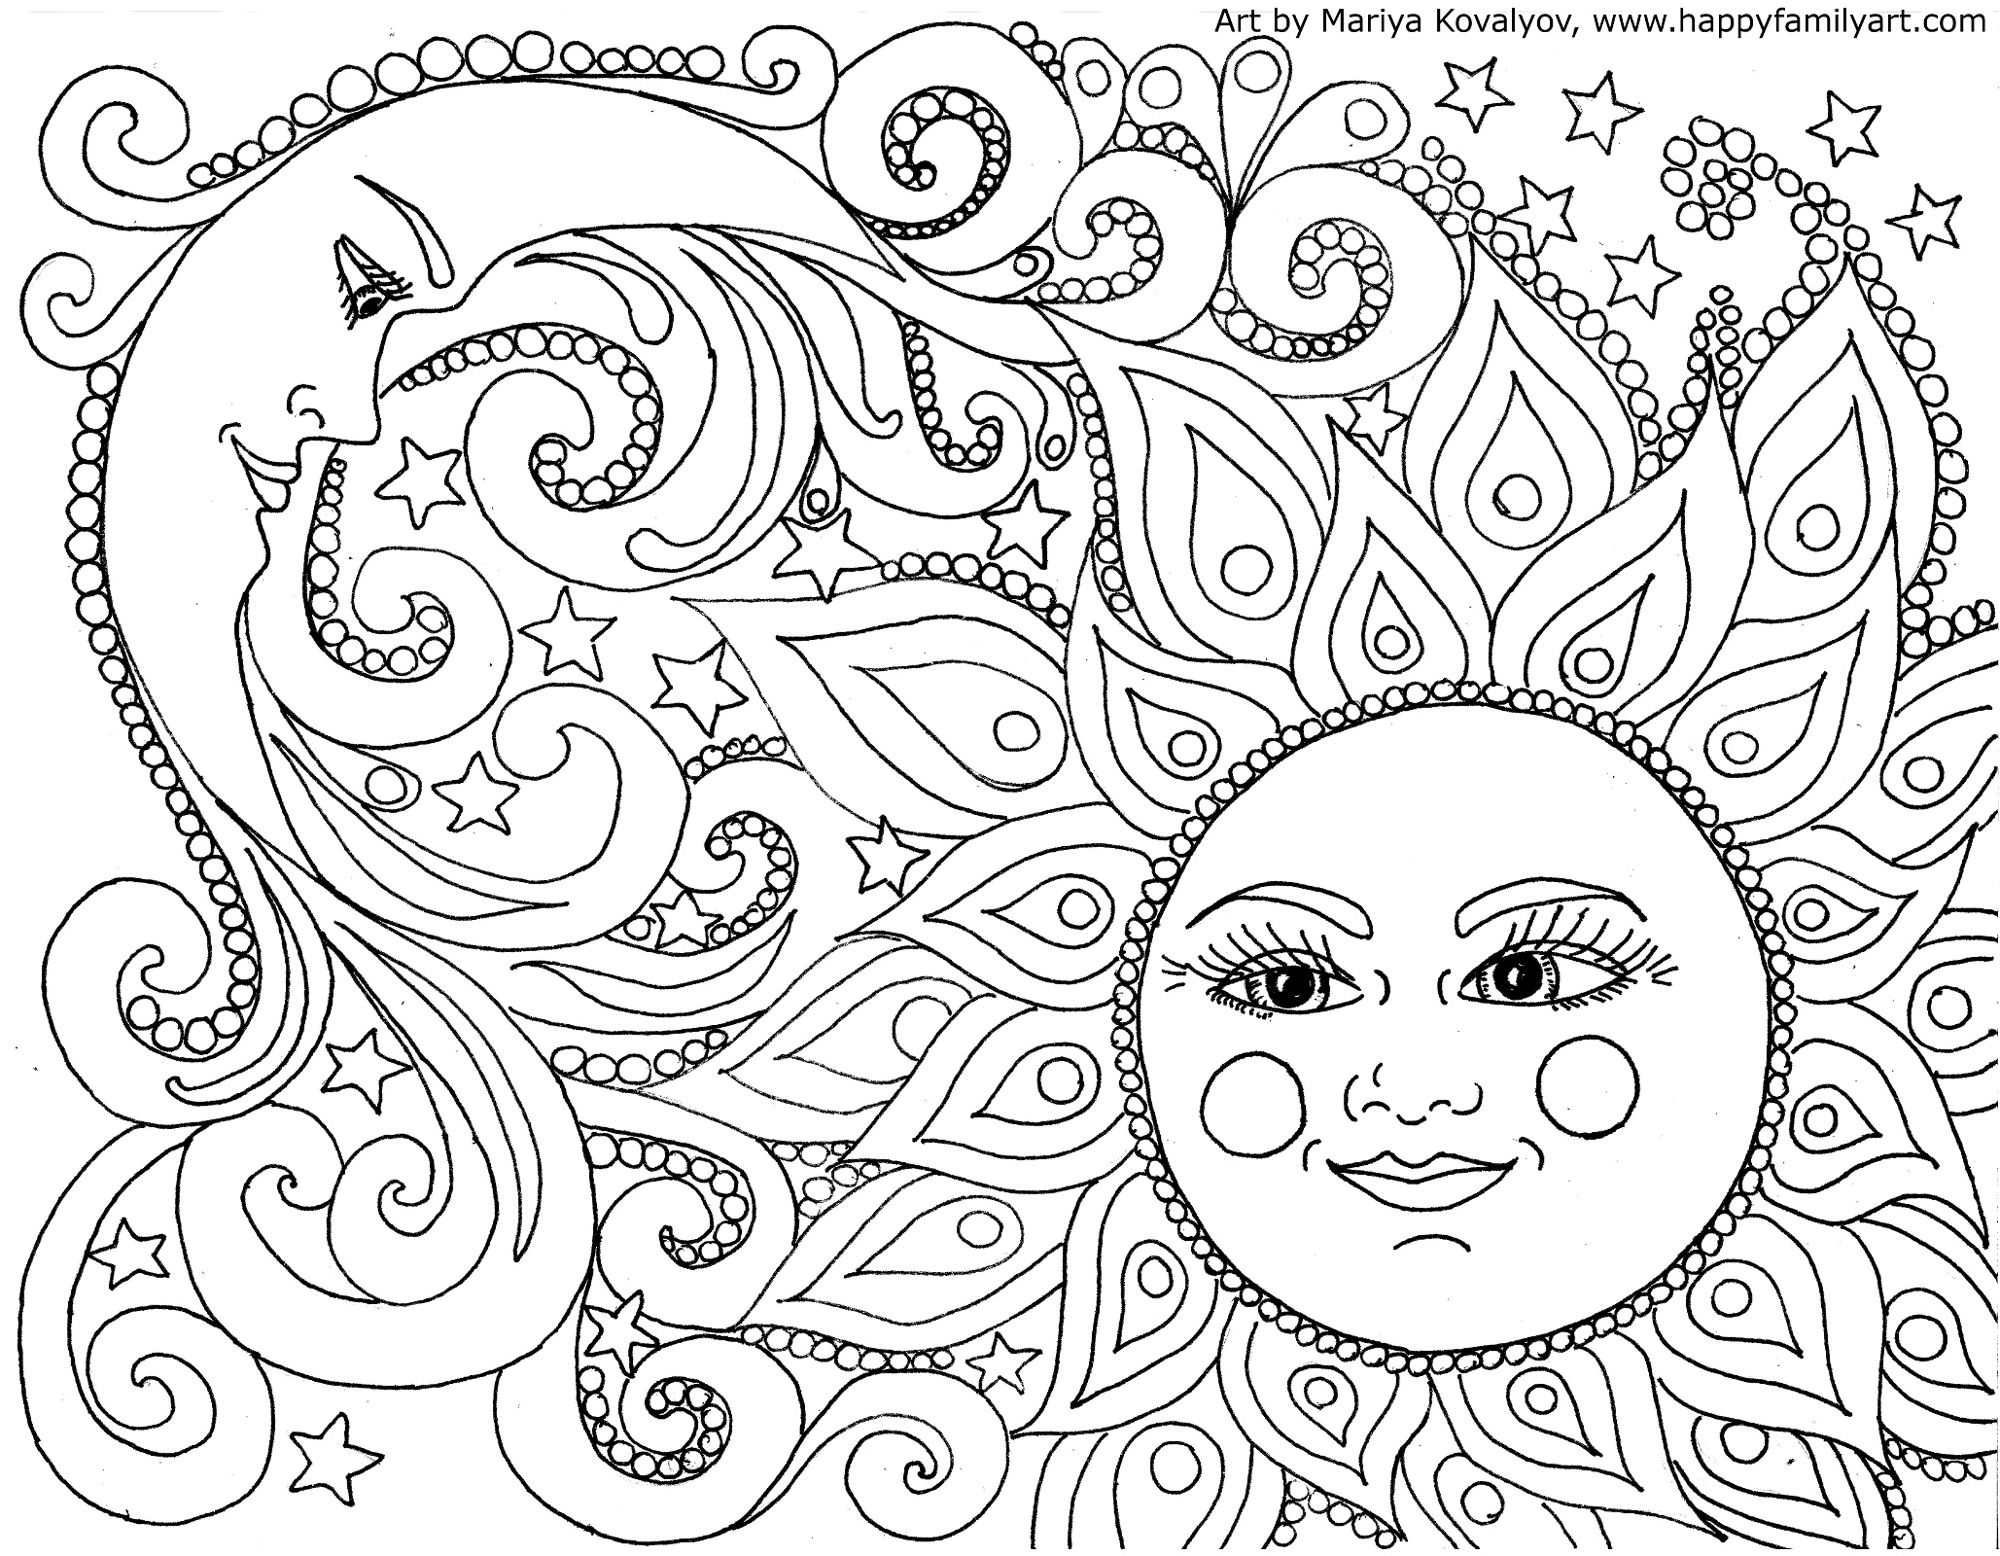 I made many great fun and original coloring pages color your heart out printable adult coloring